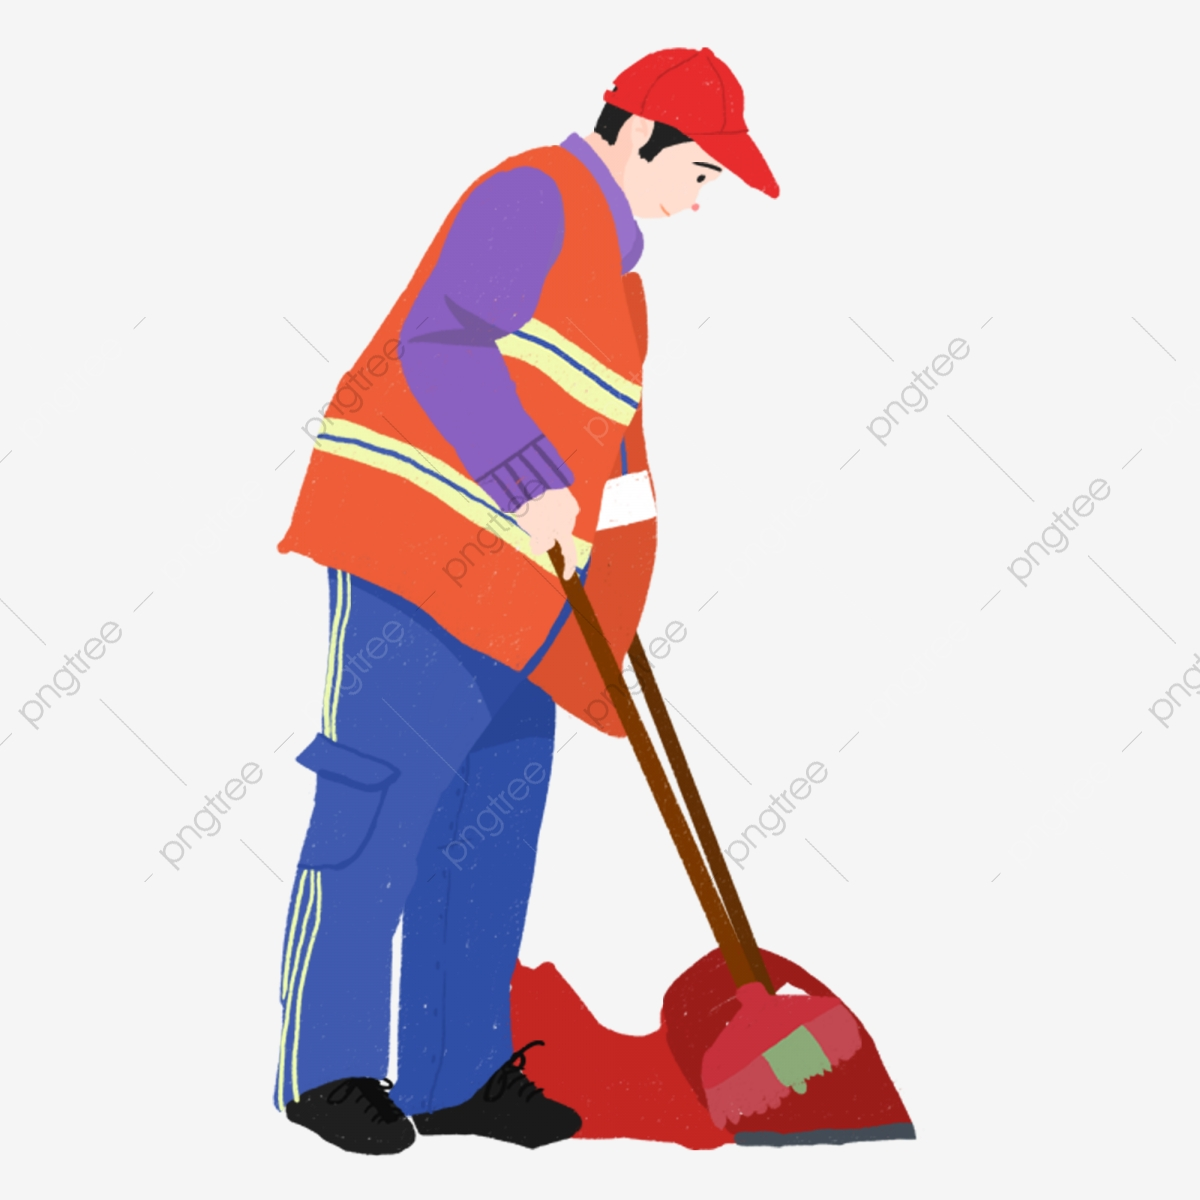 Hand drawn sanitation sweeping. Clean clipart worker